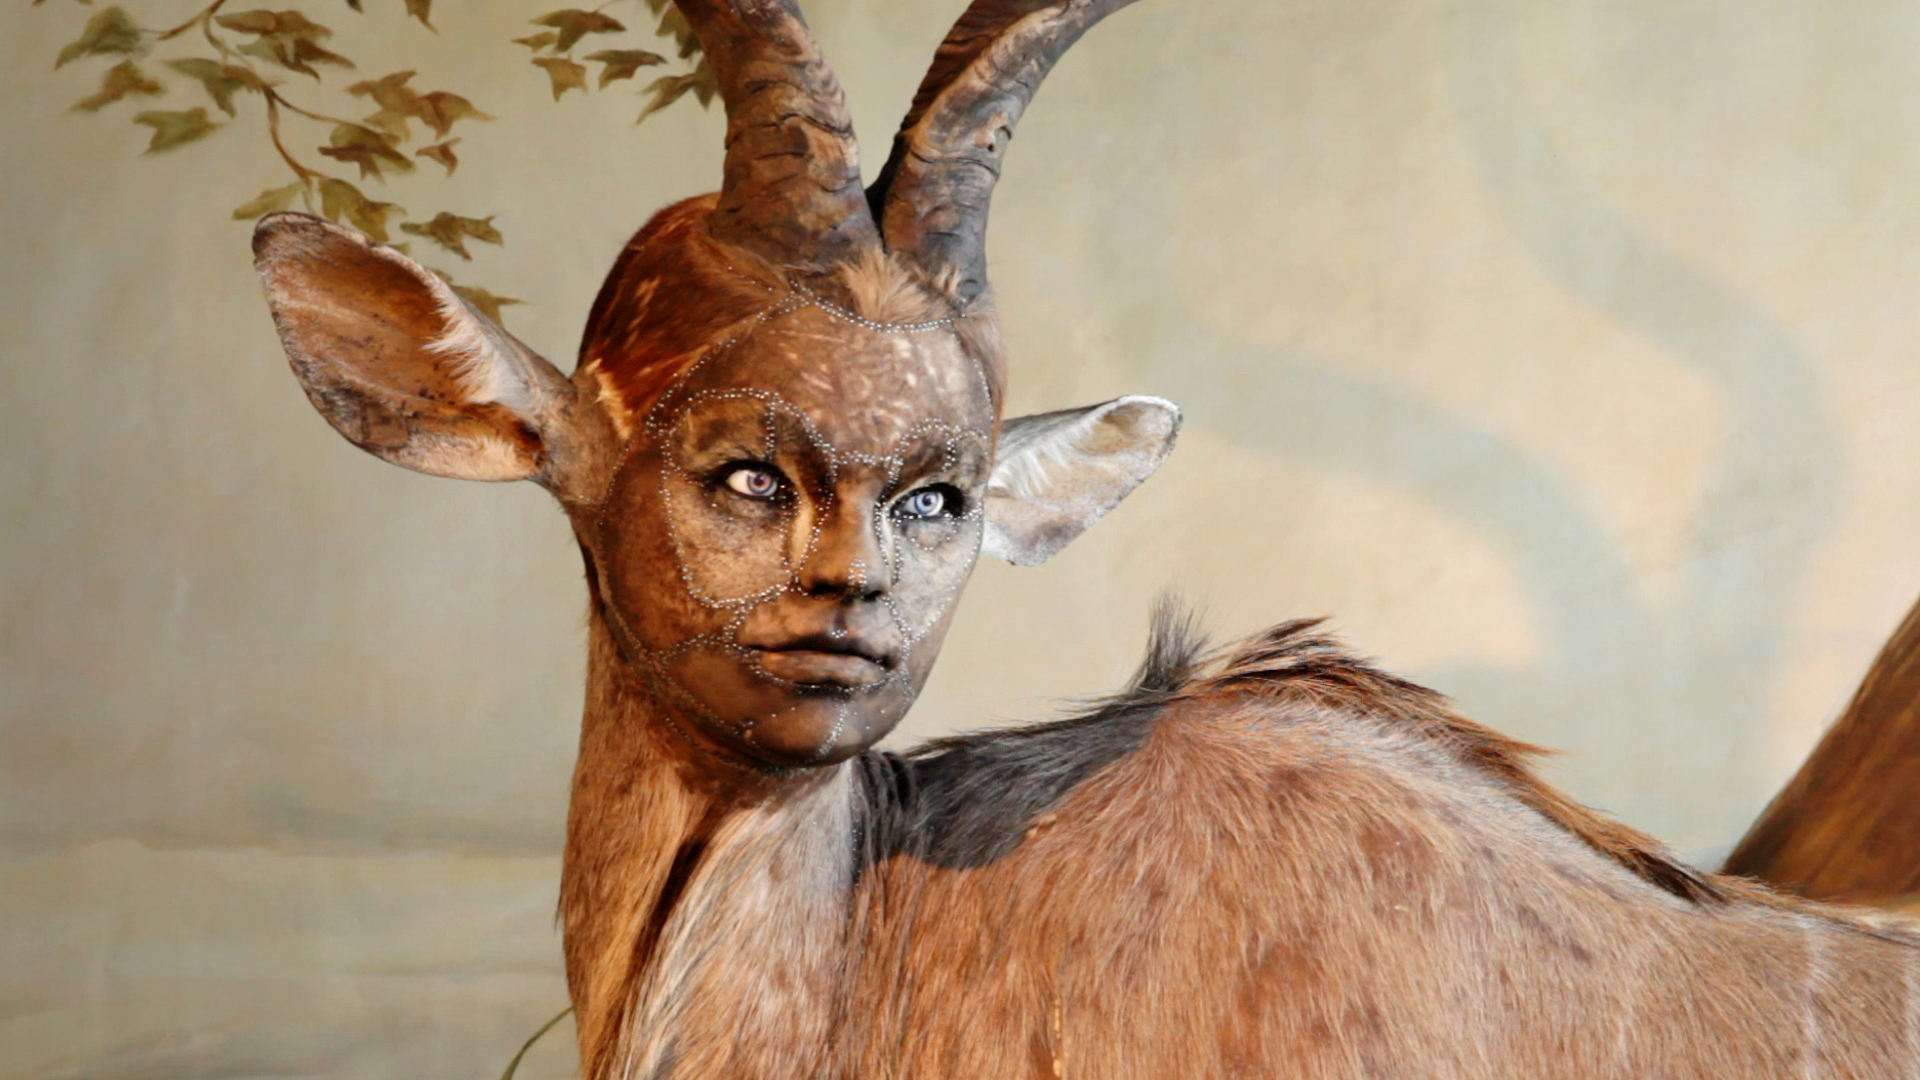 human looking faces on animal bodies taxidermy as art